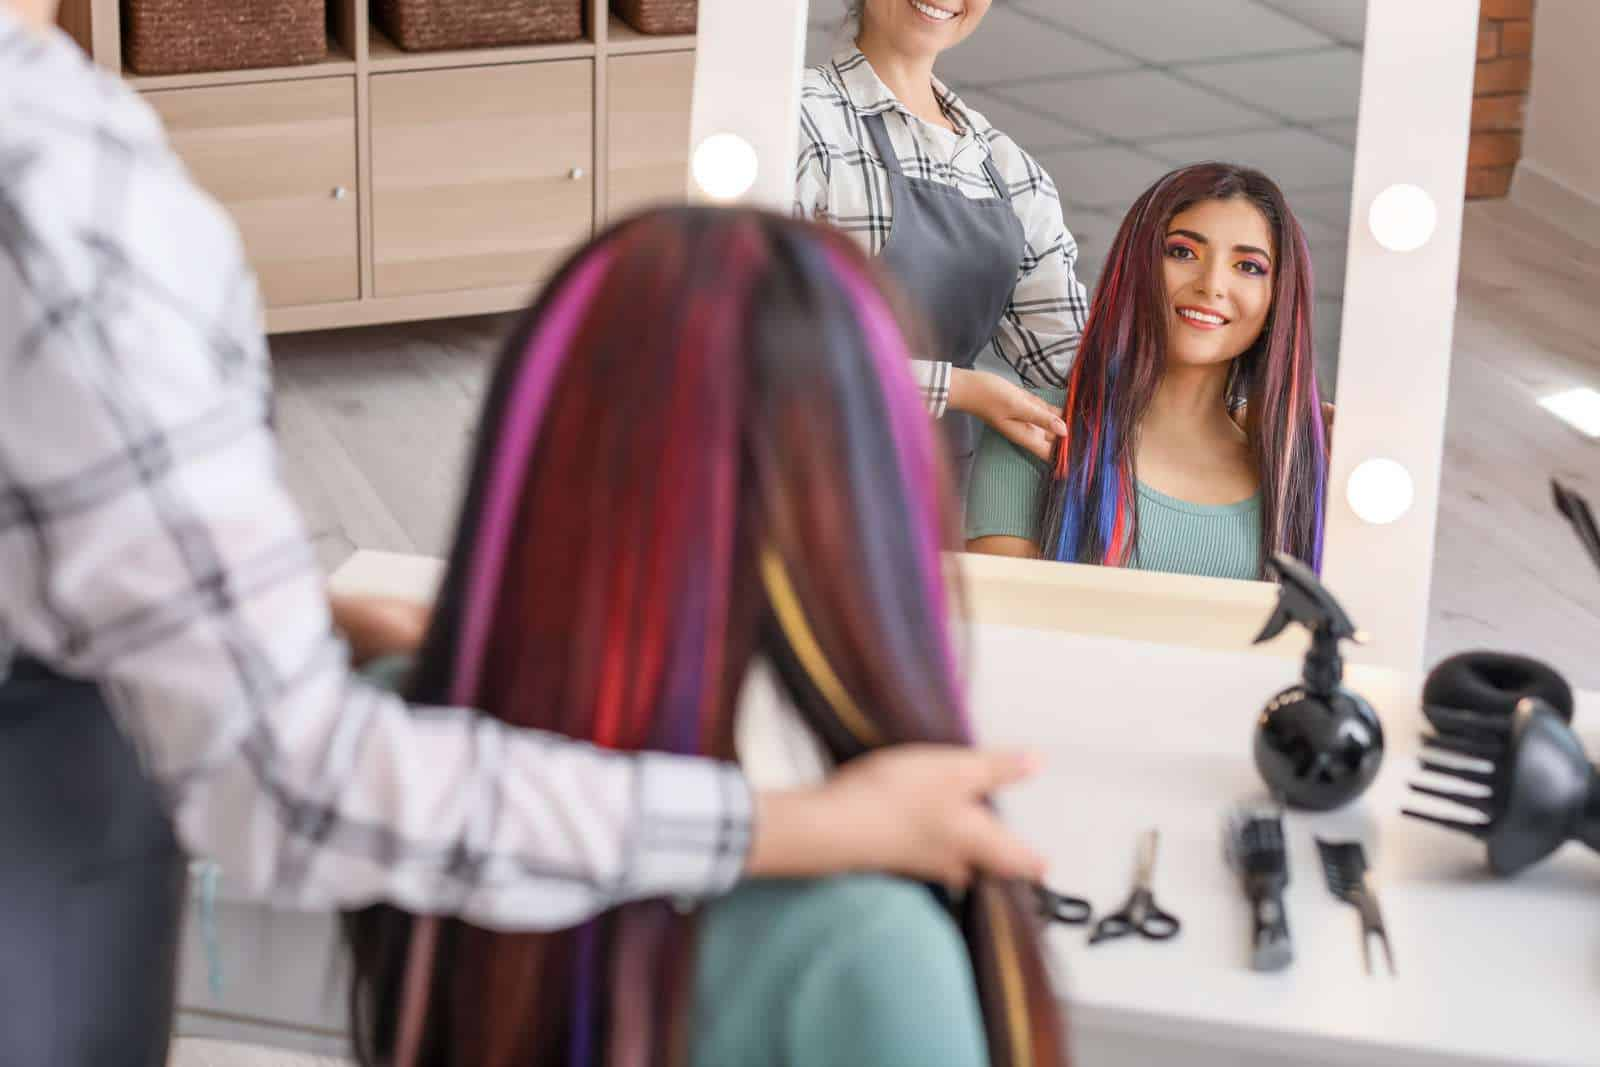 Hairdresser working with young woman in beauty salon